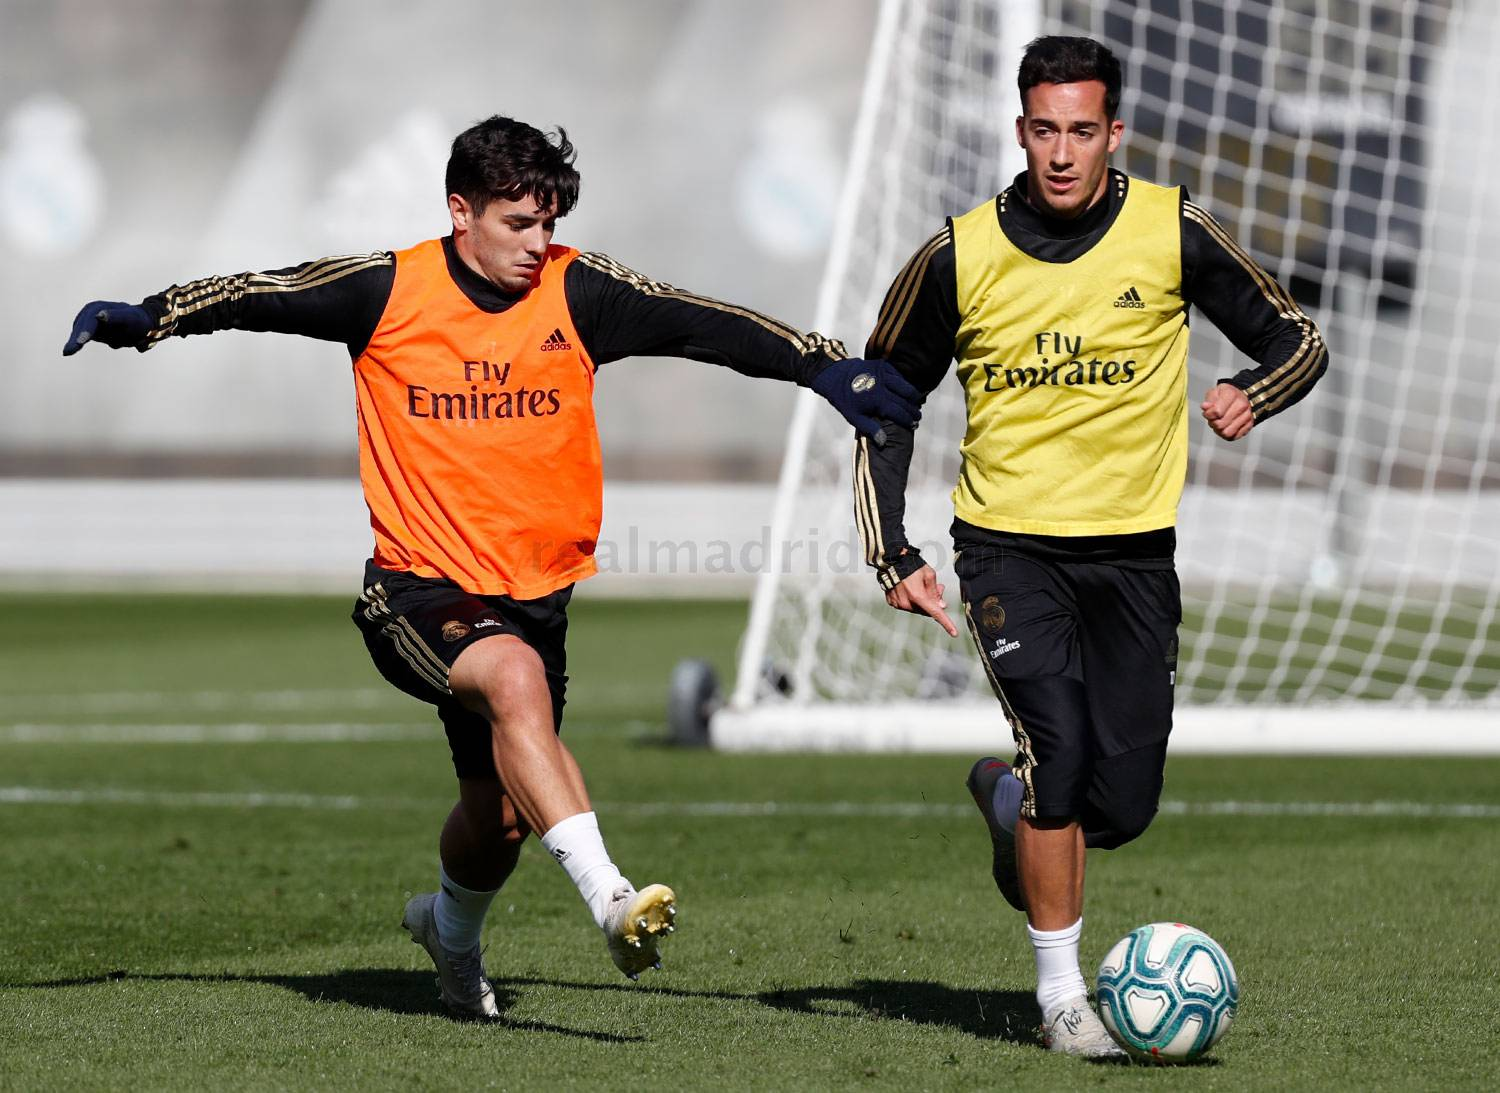 Real Madrid - Entrenamiento del Real Madrid  - 13-11-2019